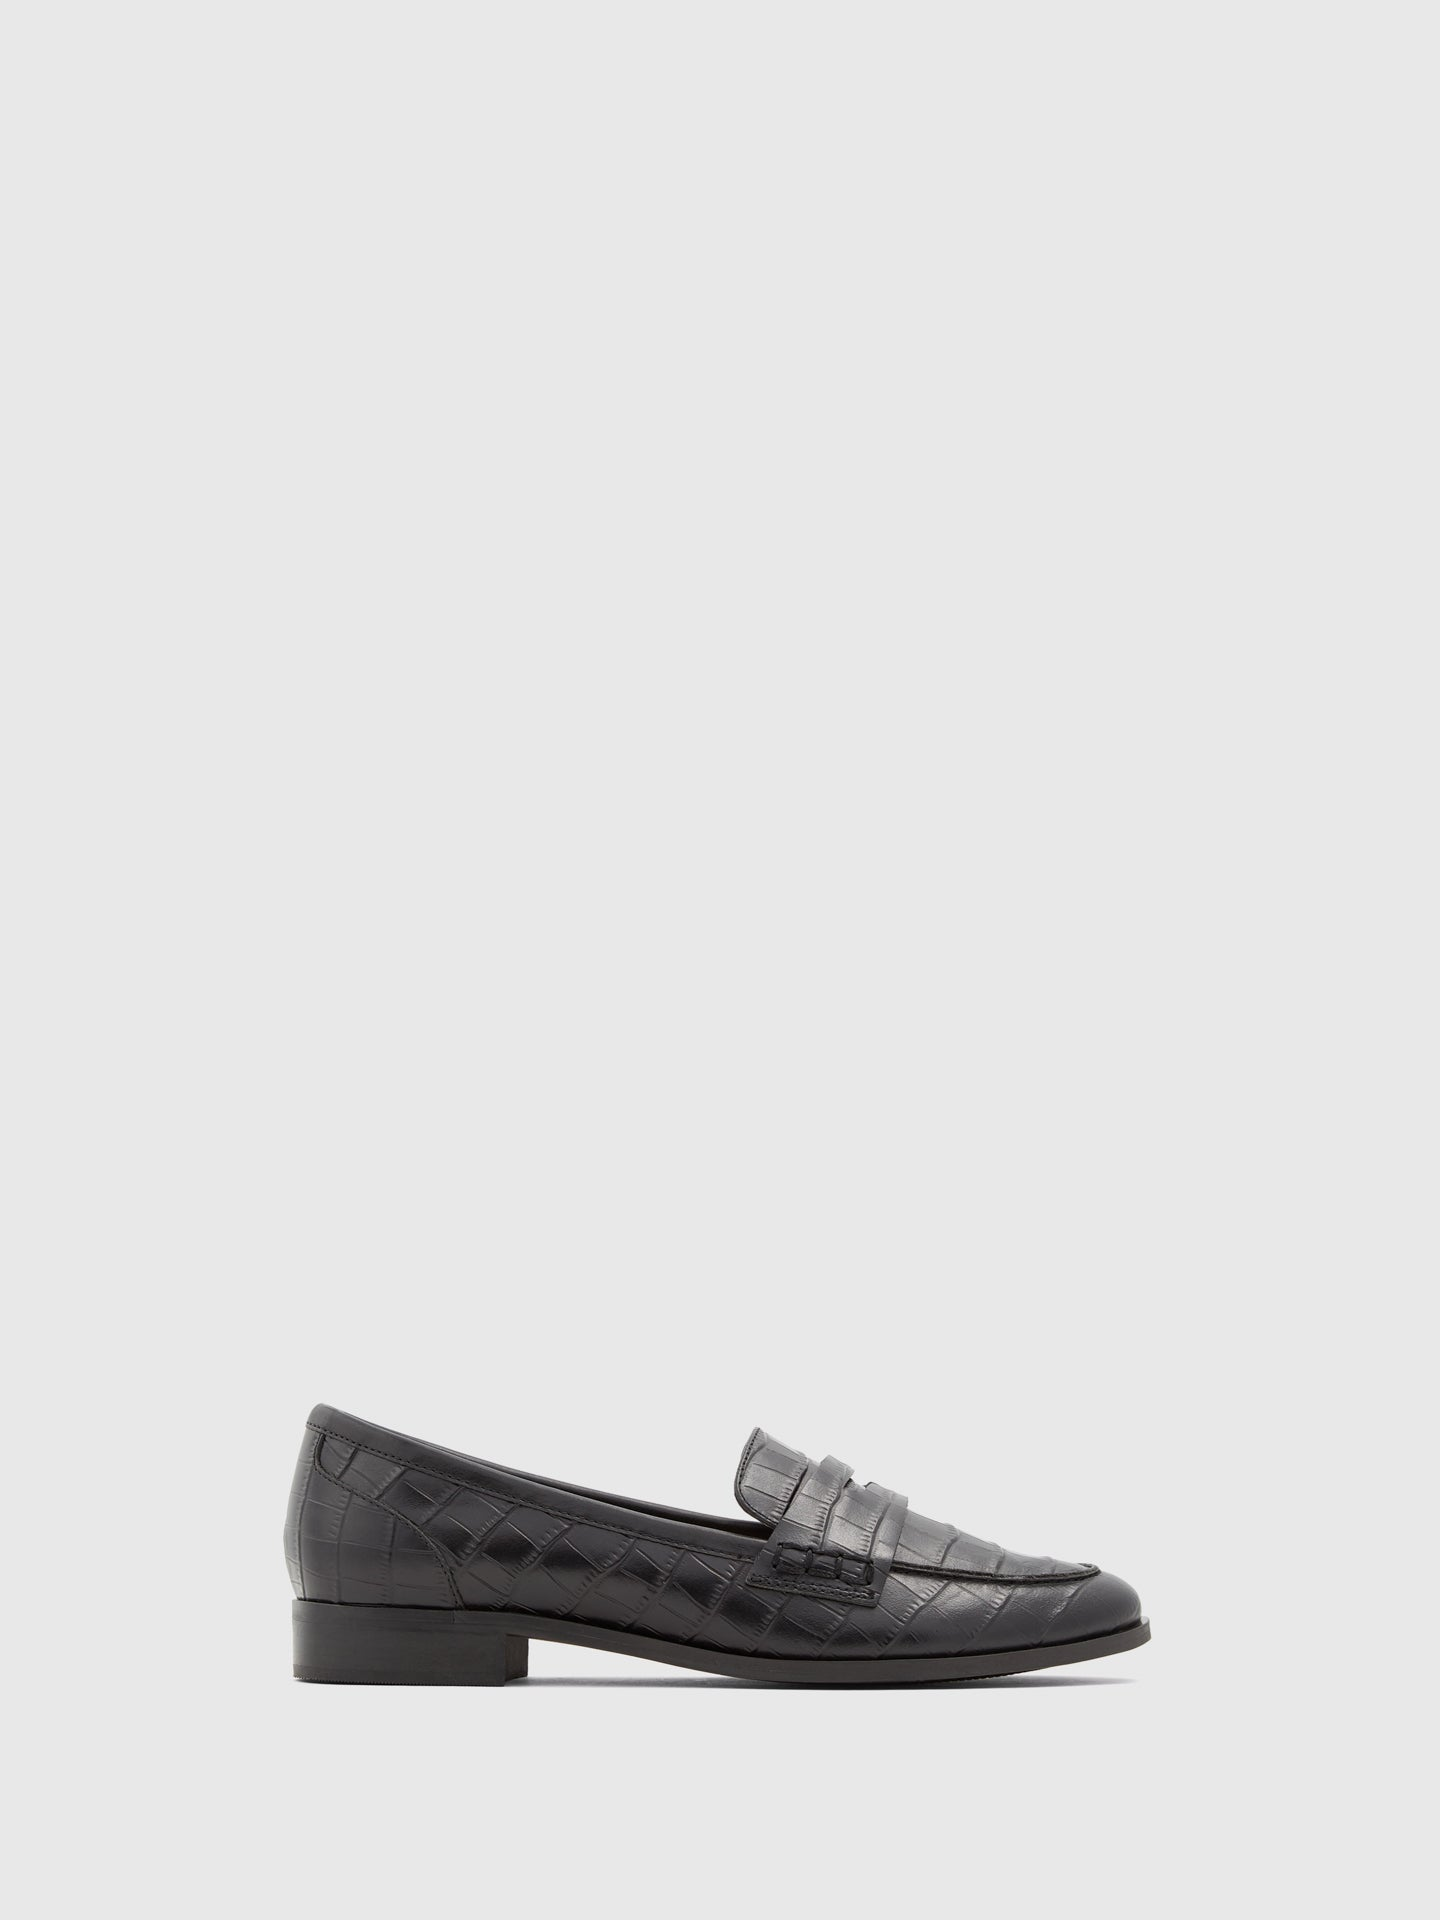 Aldo Gloss Black Loafers Shoes